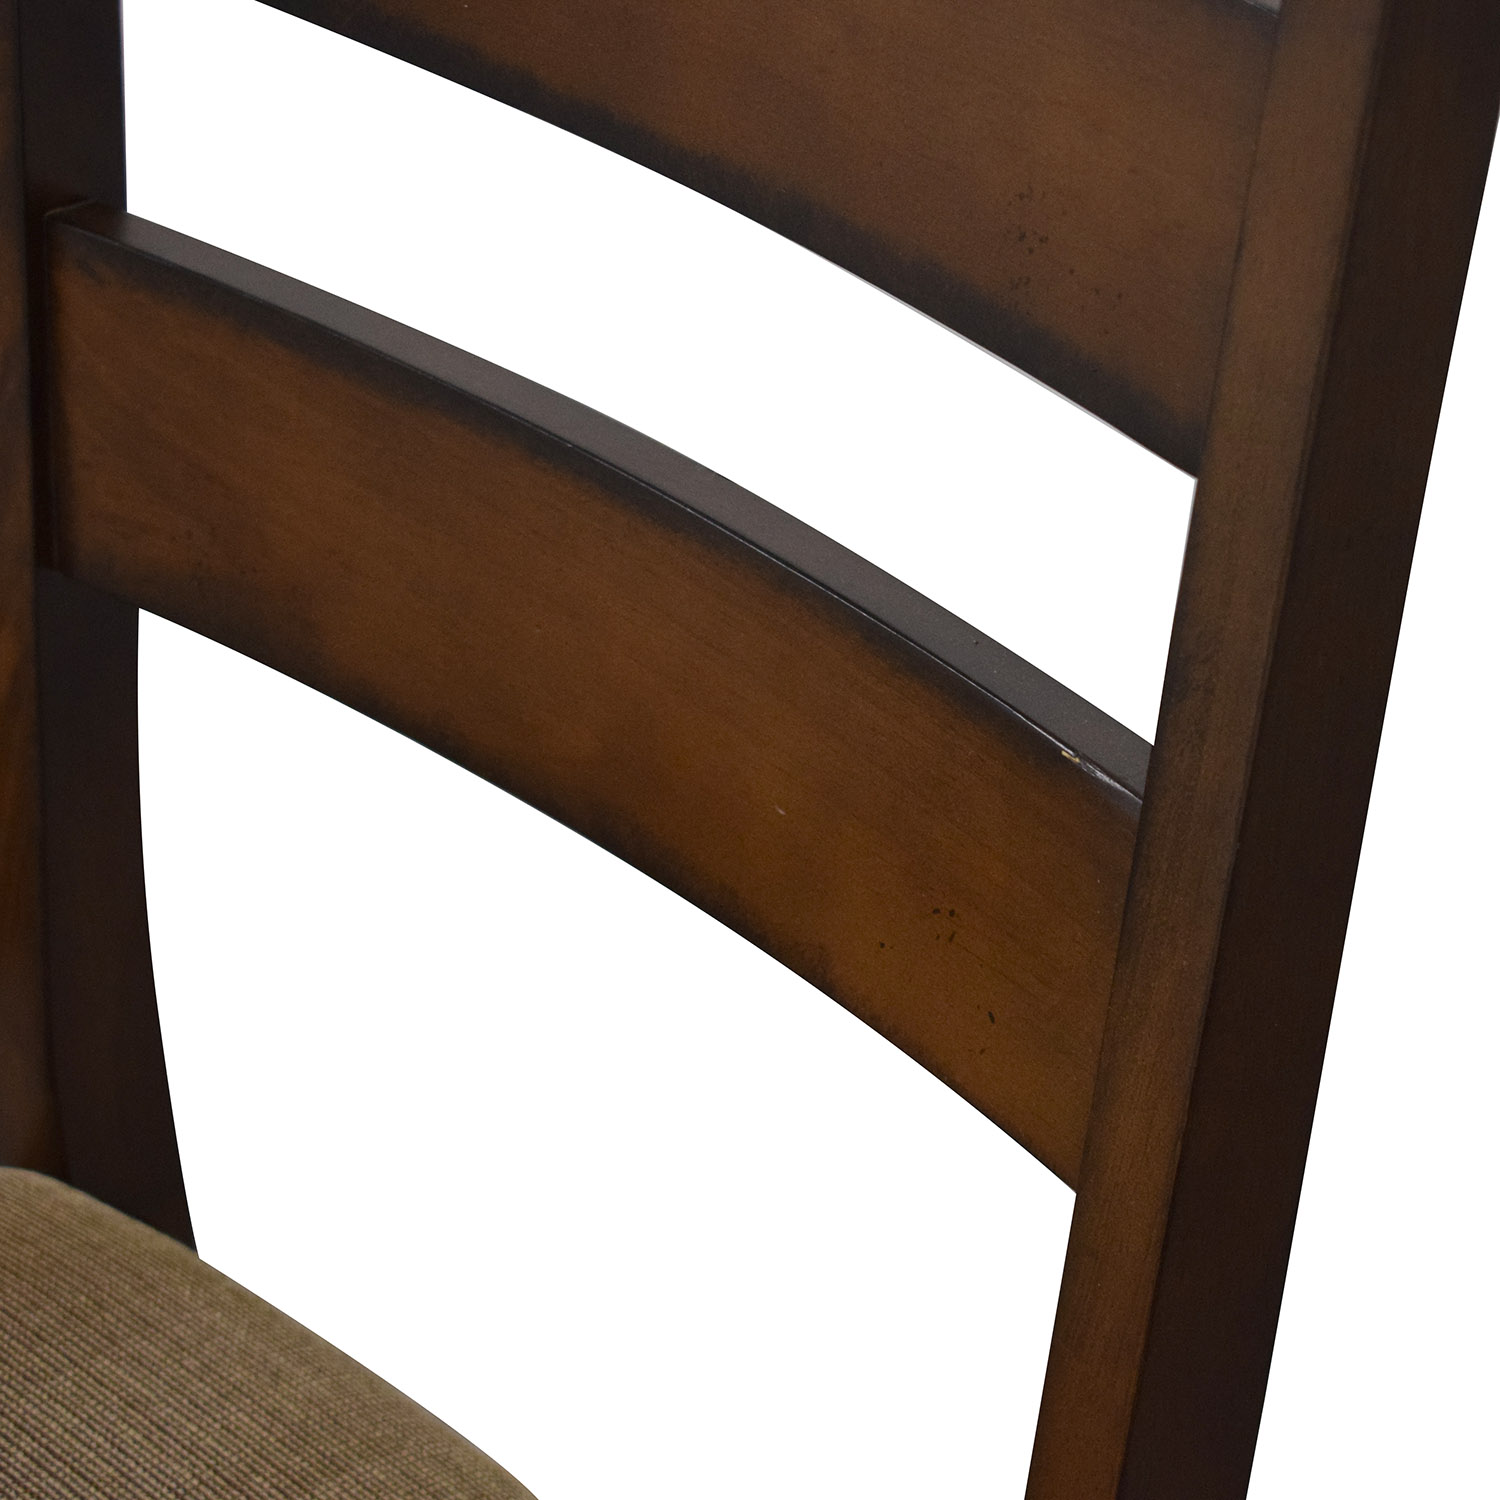 Wayfair Wayfair Ladder Back Upholstered Dining Chairs brown and tan